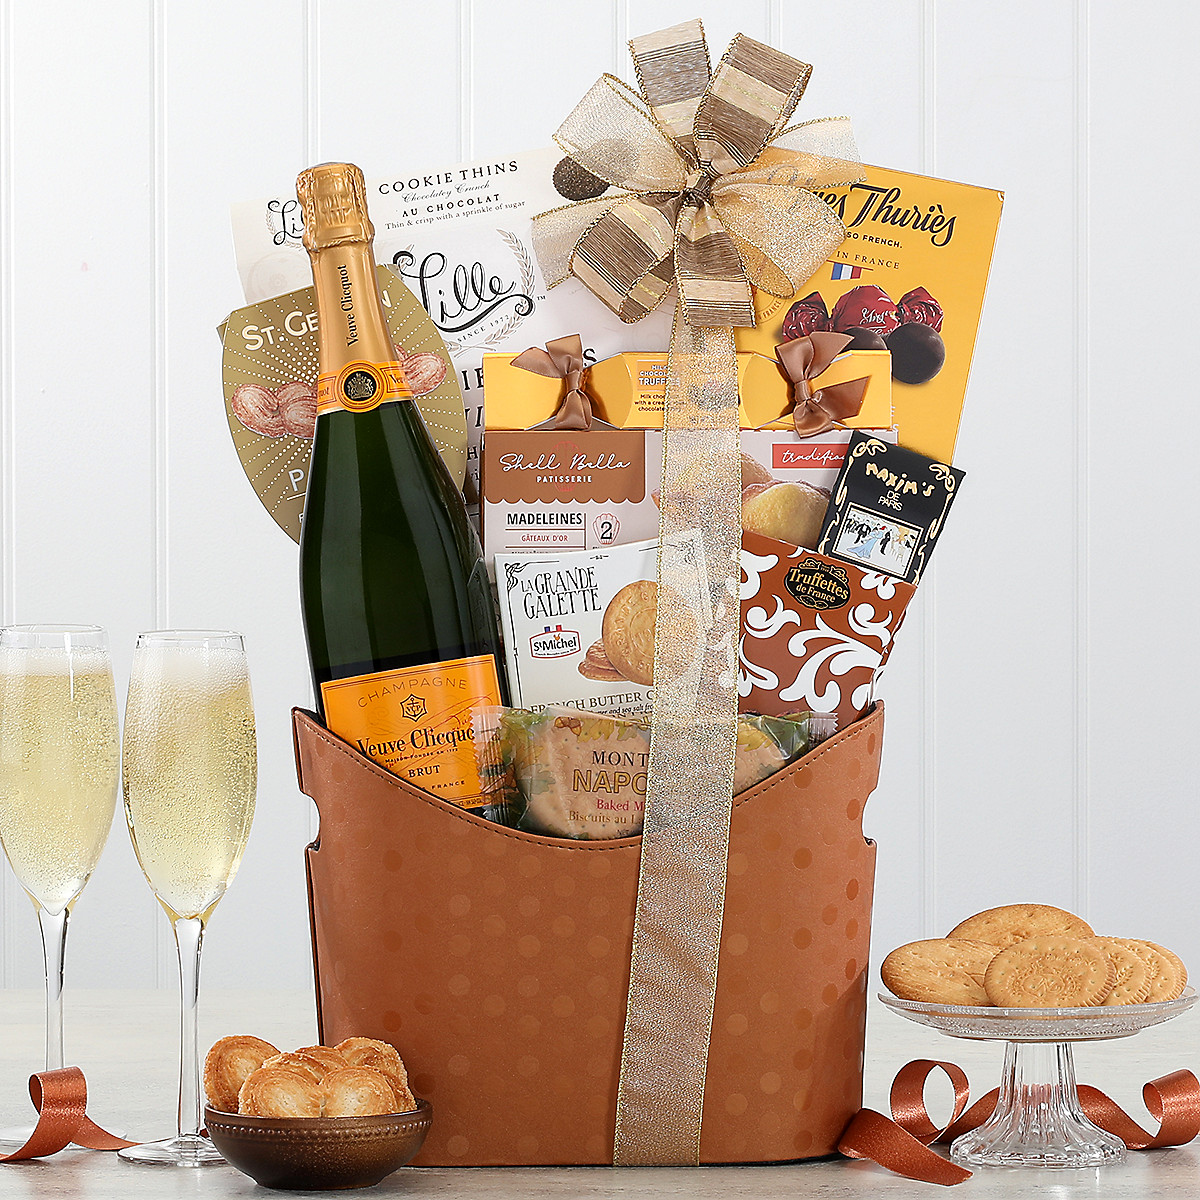 Buy chocolate gift baskets - Veuve Clicquot Champagne and Chocolate Gift Basket